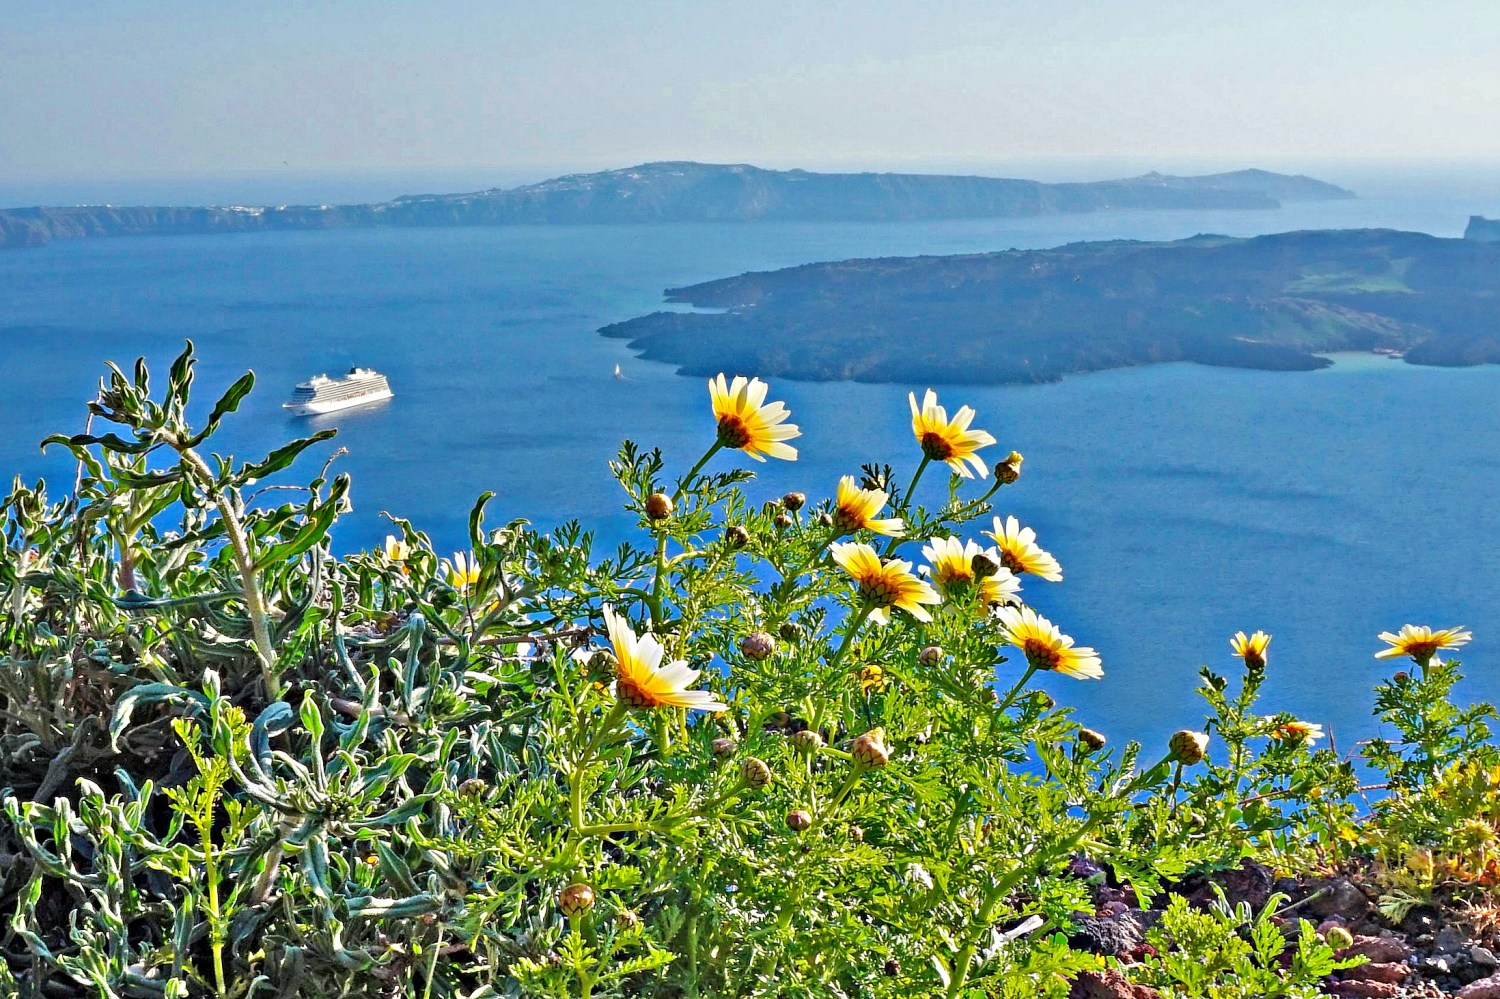 Imerovigli Santorini - a view of the caldera through the wildflowers.